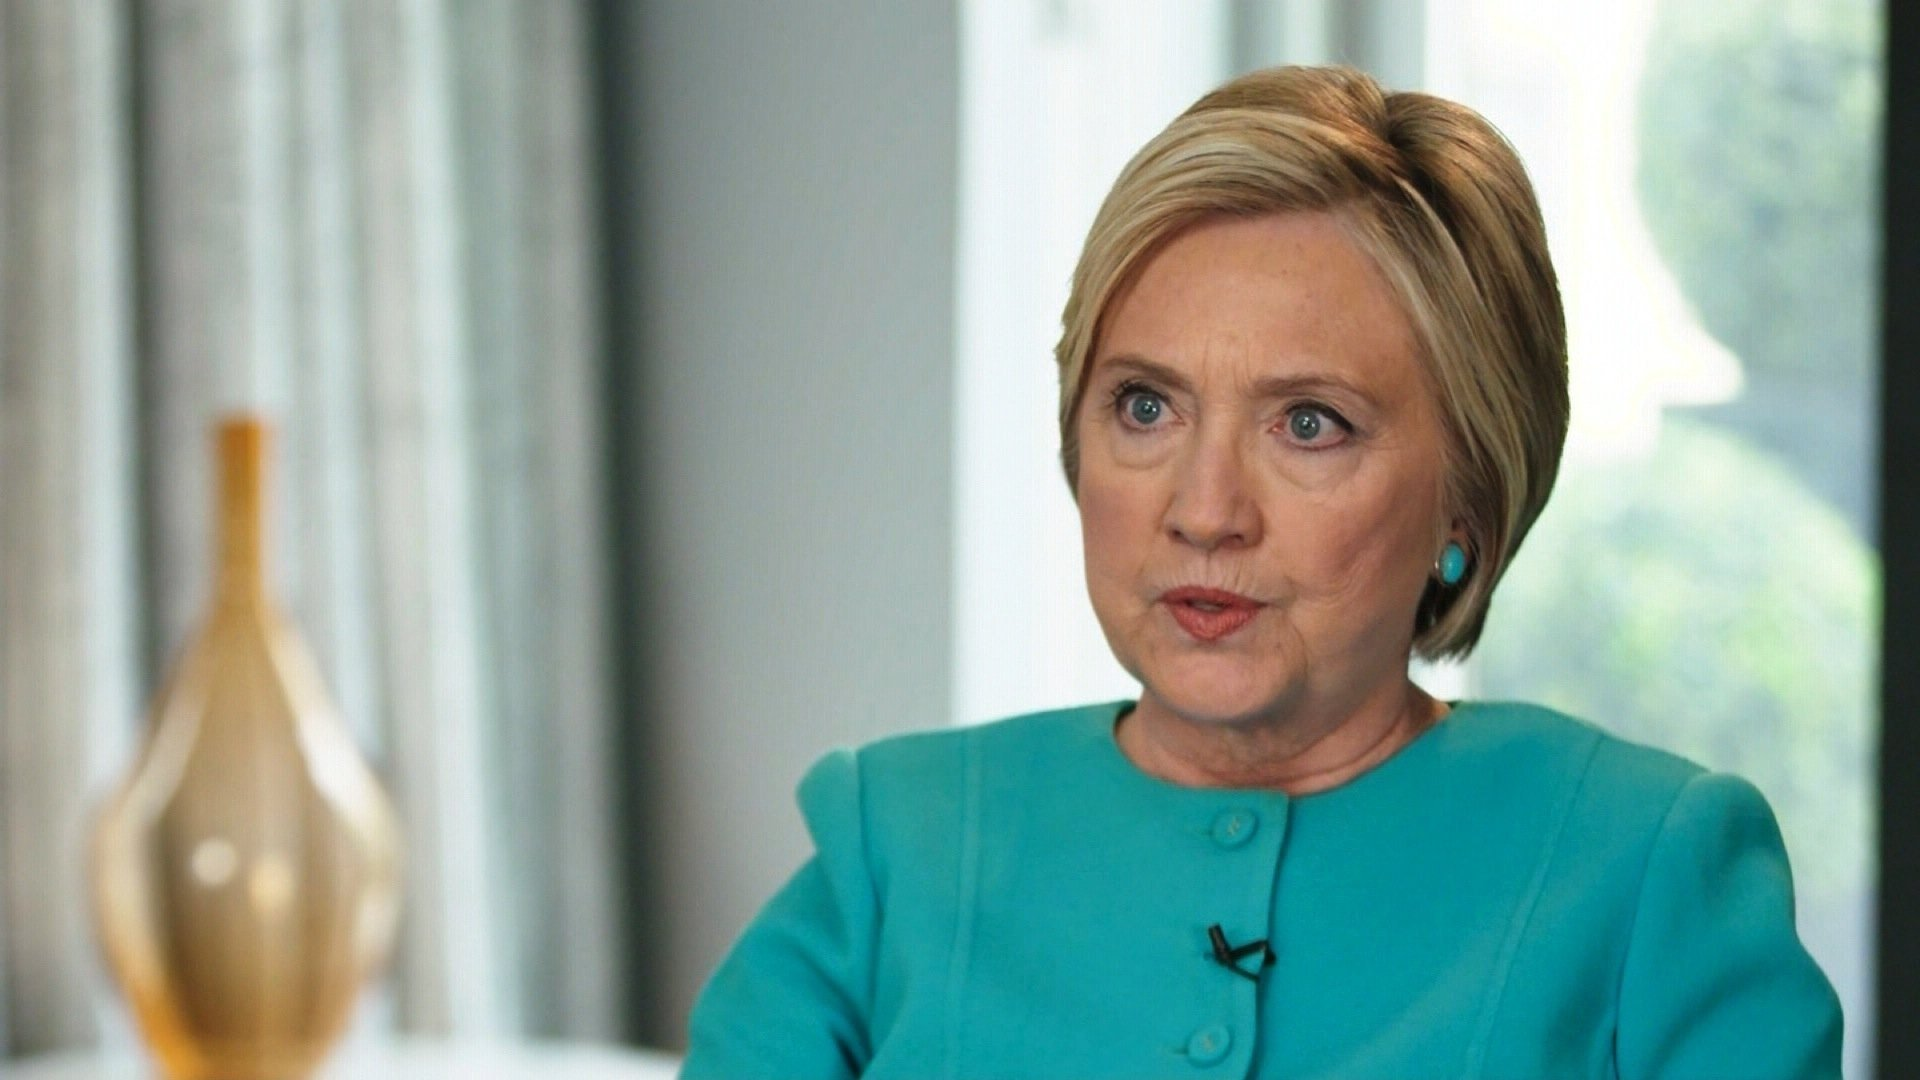 Clinton released a statement condemning major Democratic donor Harvey Weinstein. photo courtesy of CNN.